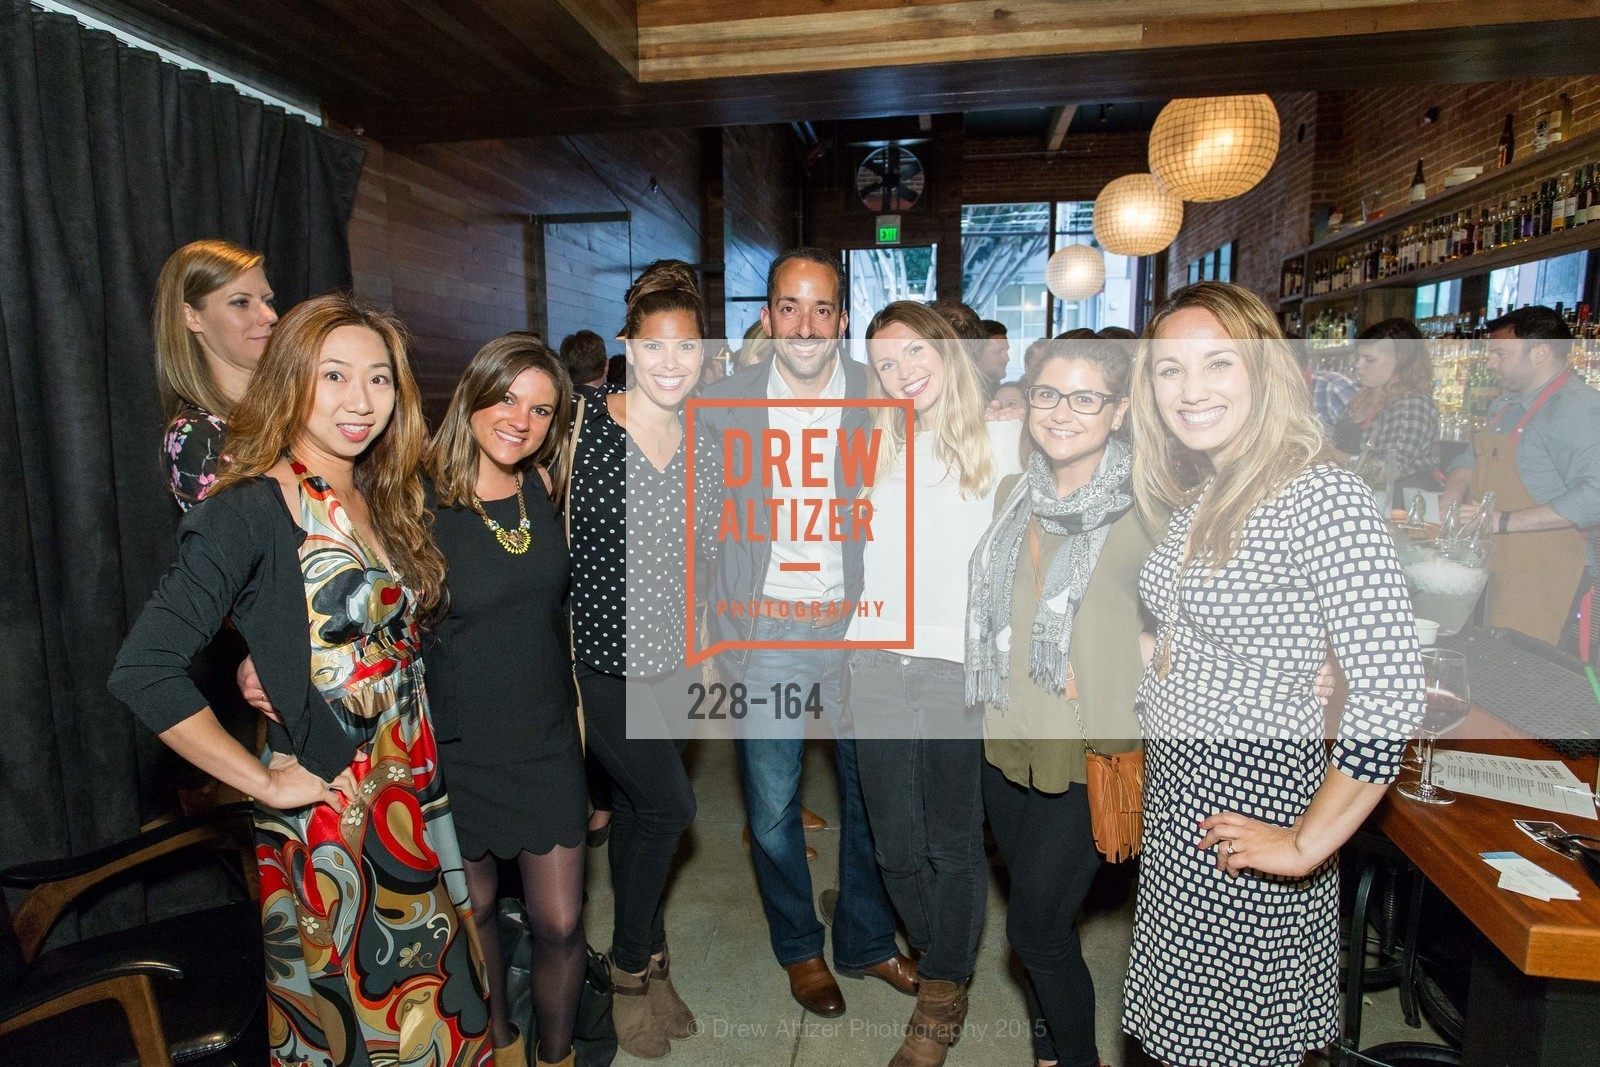 Fiona Chan, Julie Admassu, Bree Brooks, Gustavo Fernandez, Carina Hessmer, Roxanne Rodriquez, Ashley Guillory, Forgery Bar Opening Celebration, Forgery Bar. 152 Mission St, June 14th, 2015,Drew Altizer, Drew Altizer Photography, full-service agency, private events, San Francisco photographer, photographer california